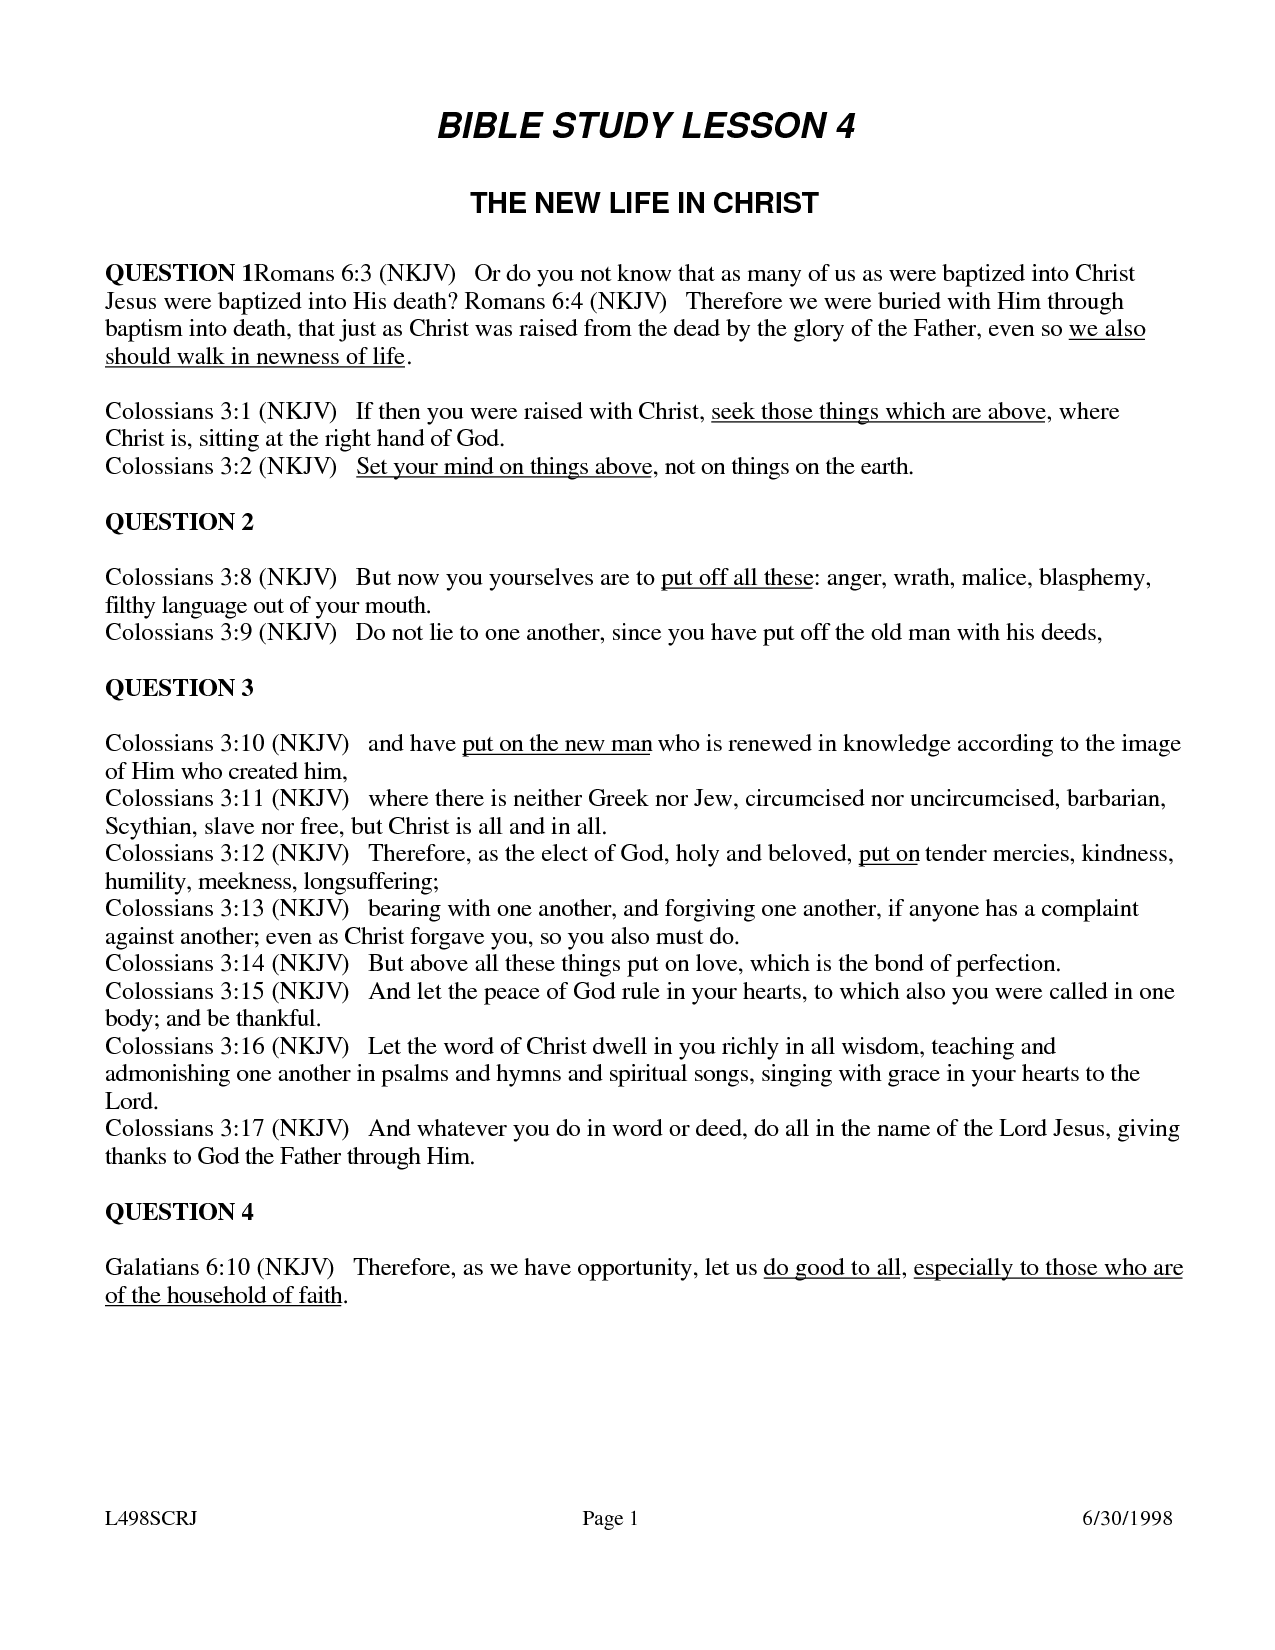 Worksheets Free Bible Worksheets For Adults free bible study worksheets delibertad youth delibertad